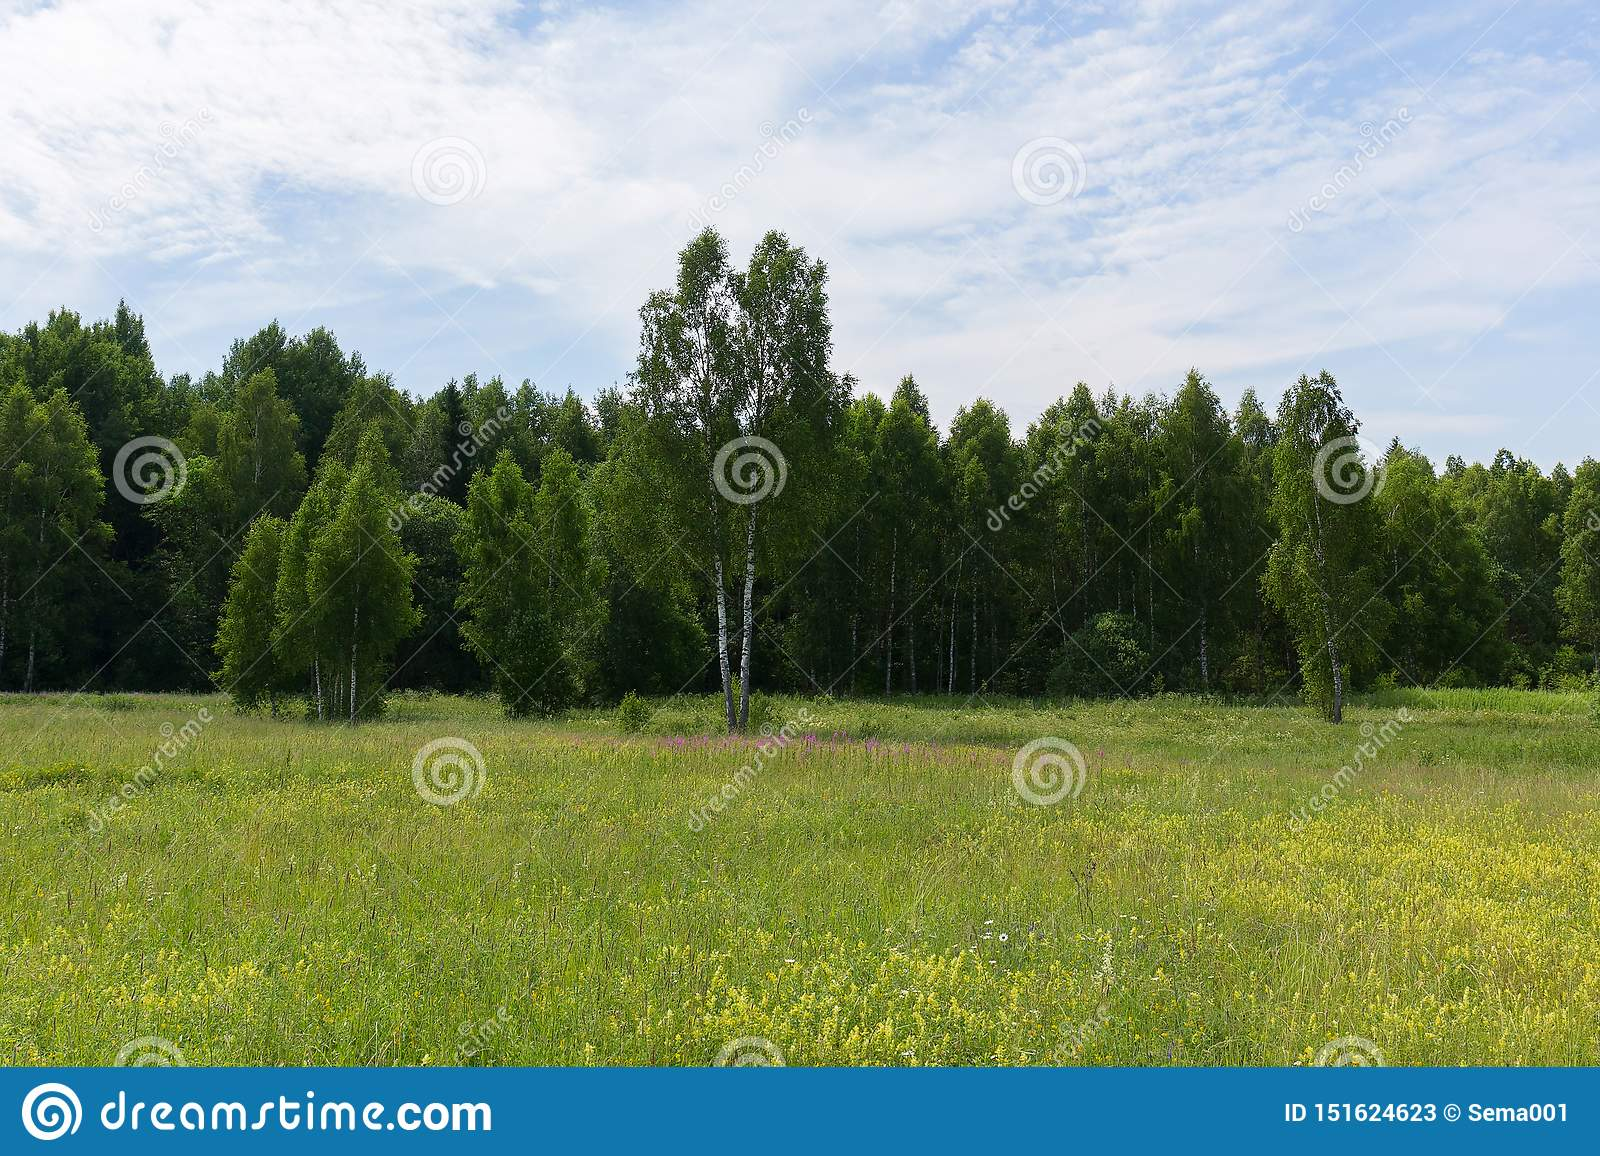 Young green birches in a meadow at the edge of the forest on a clear Sunny morning. Natural scenery.